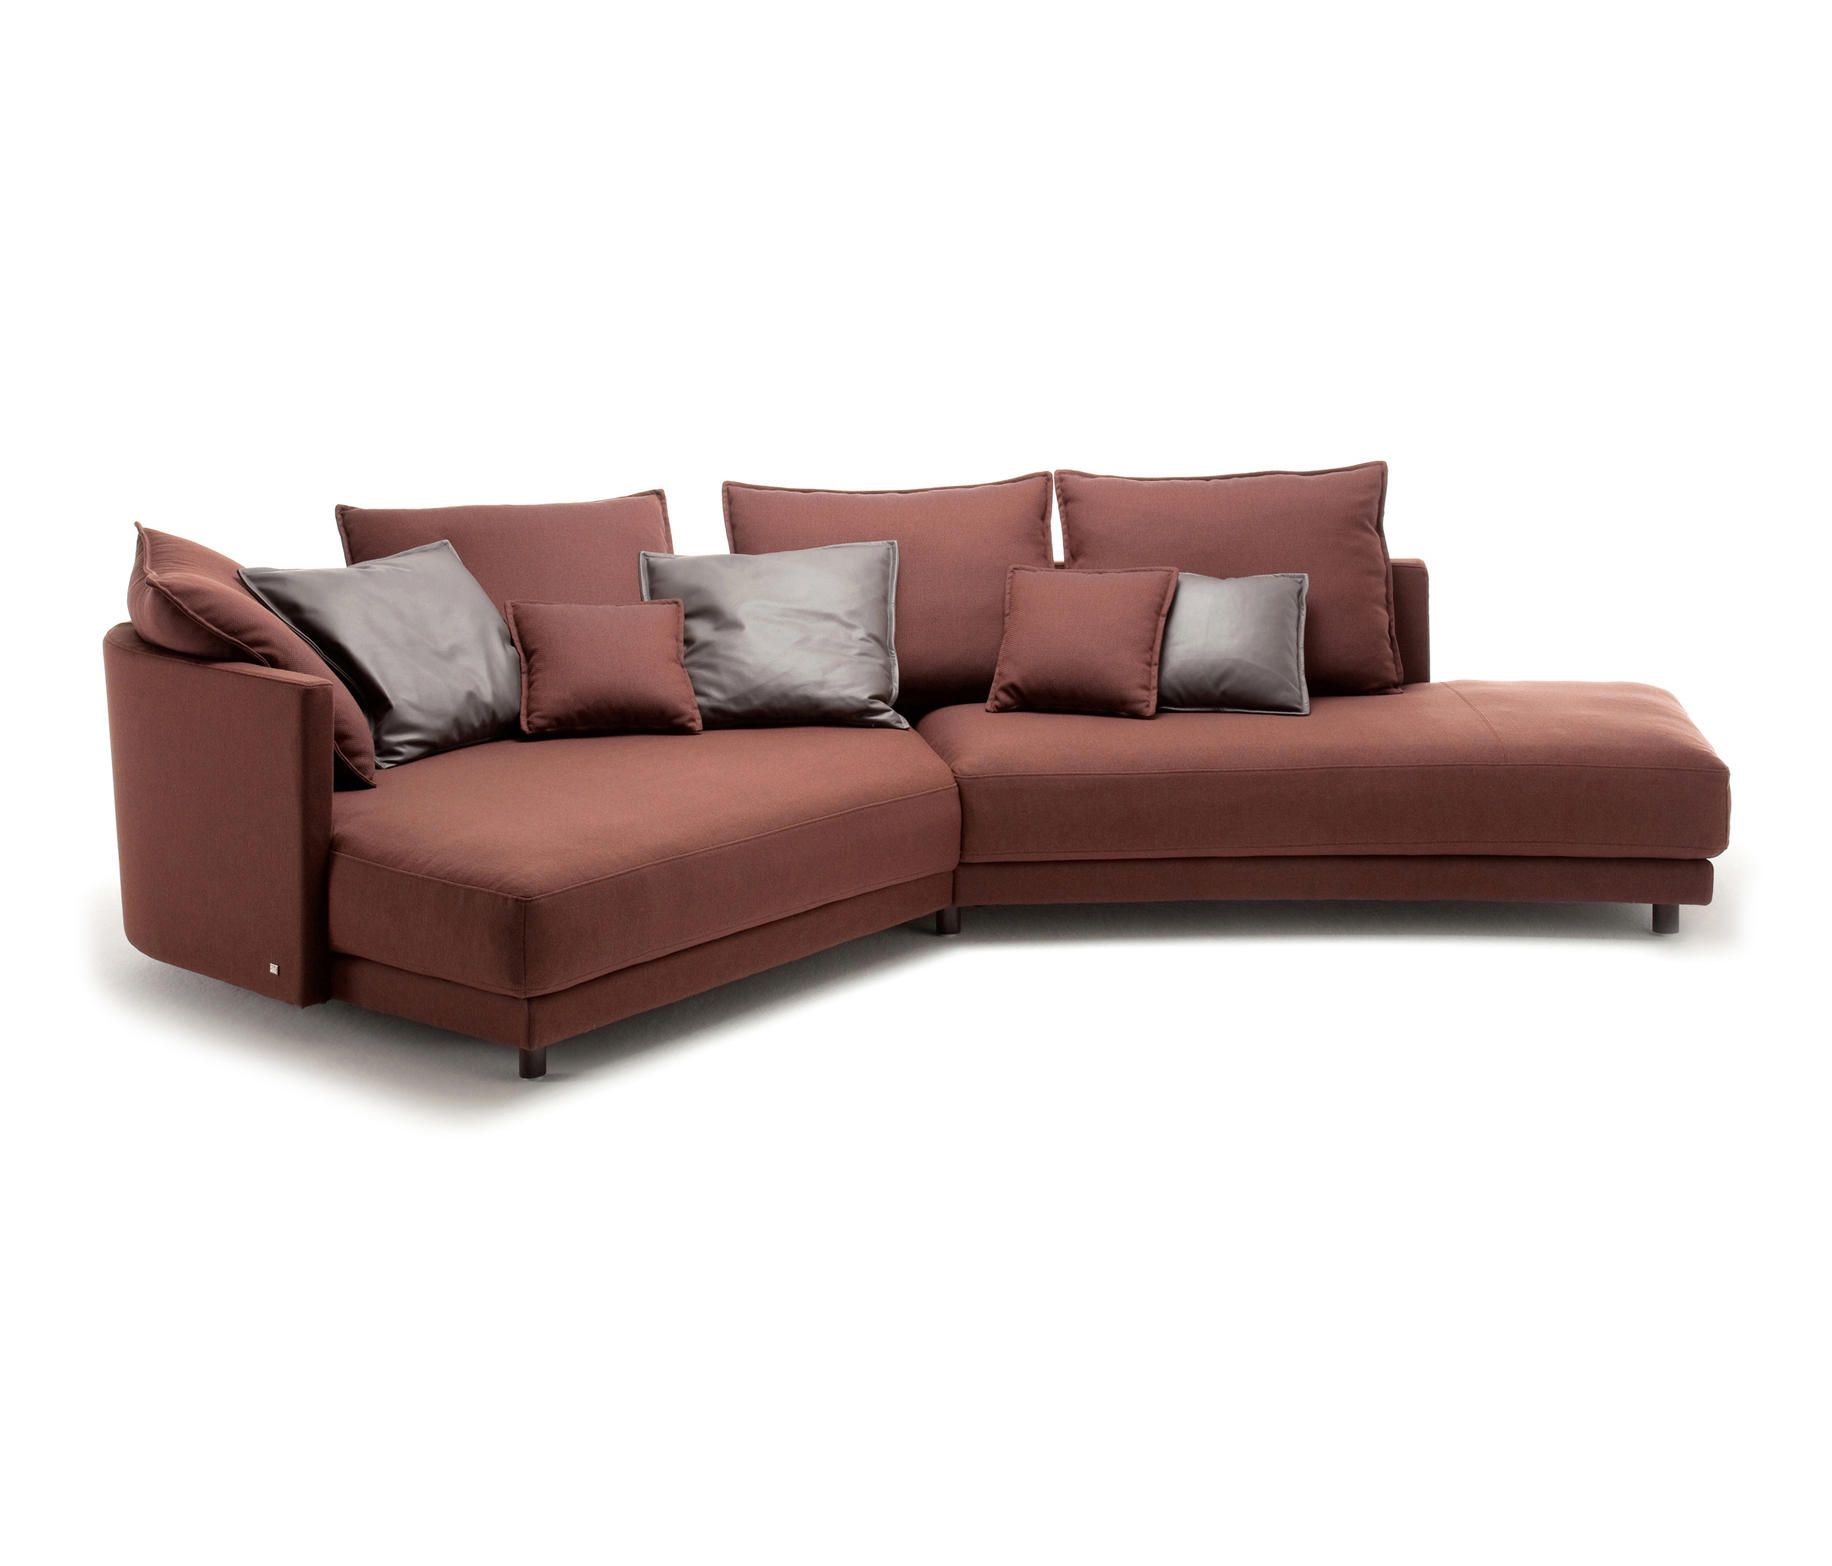 Benz Couch Rolf Benz Onda Lounge Sofas From Rolf Benz Architonic Ffe